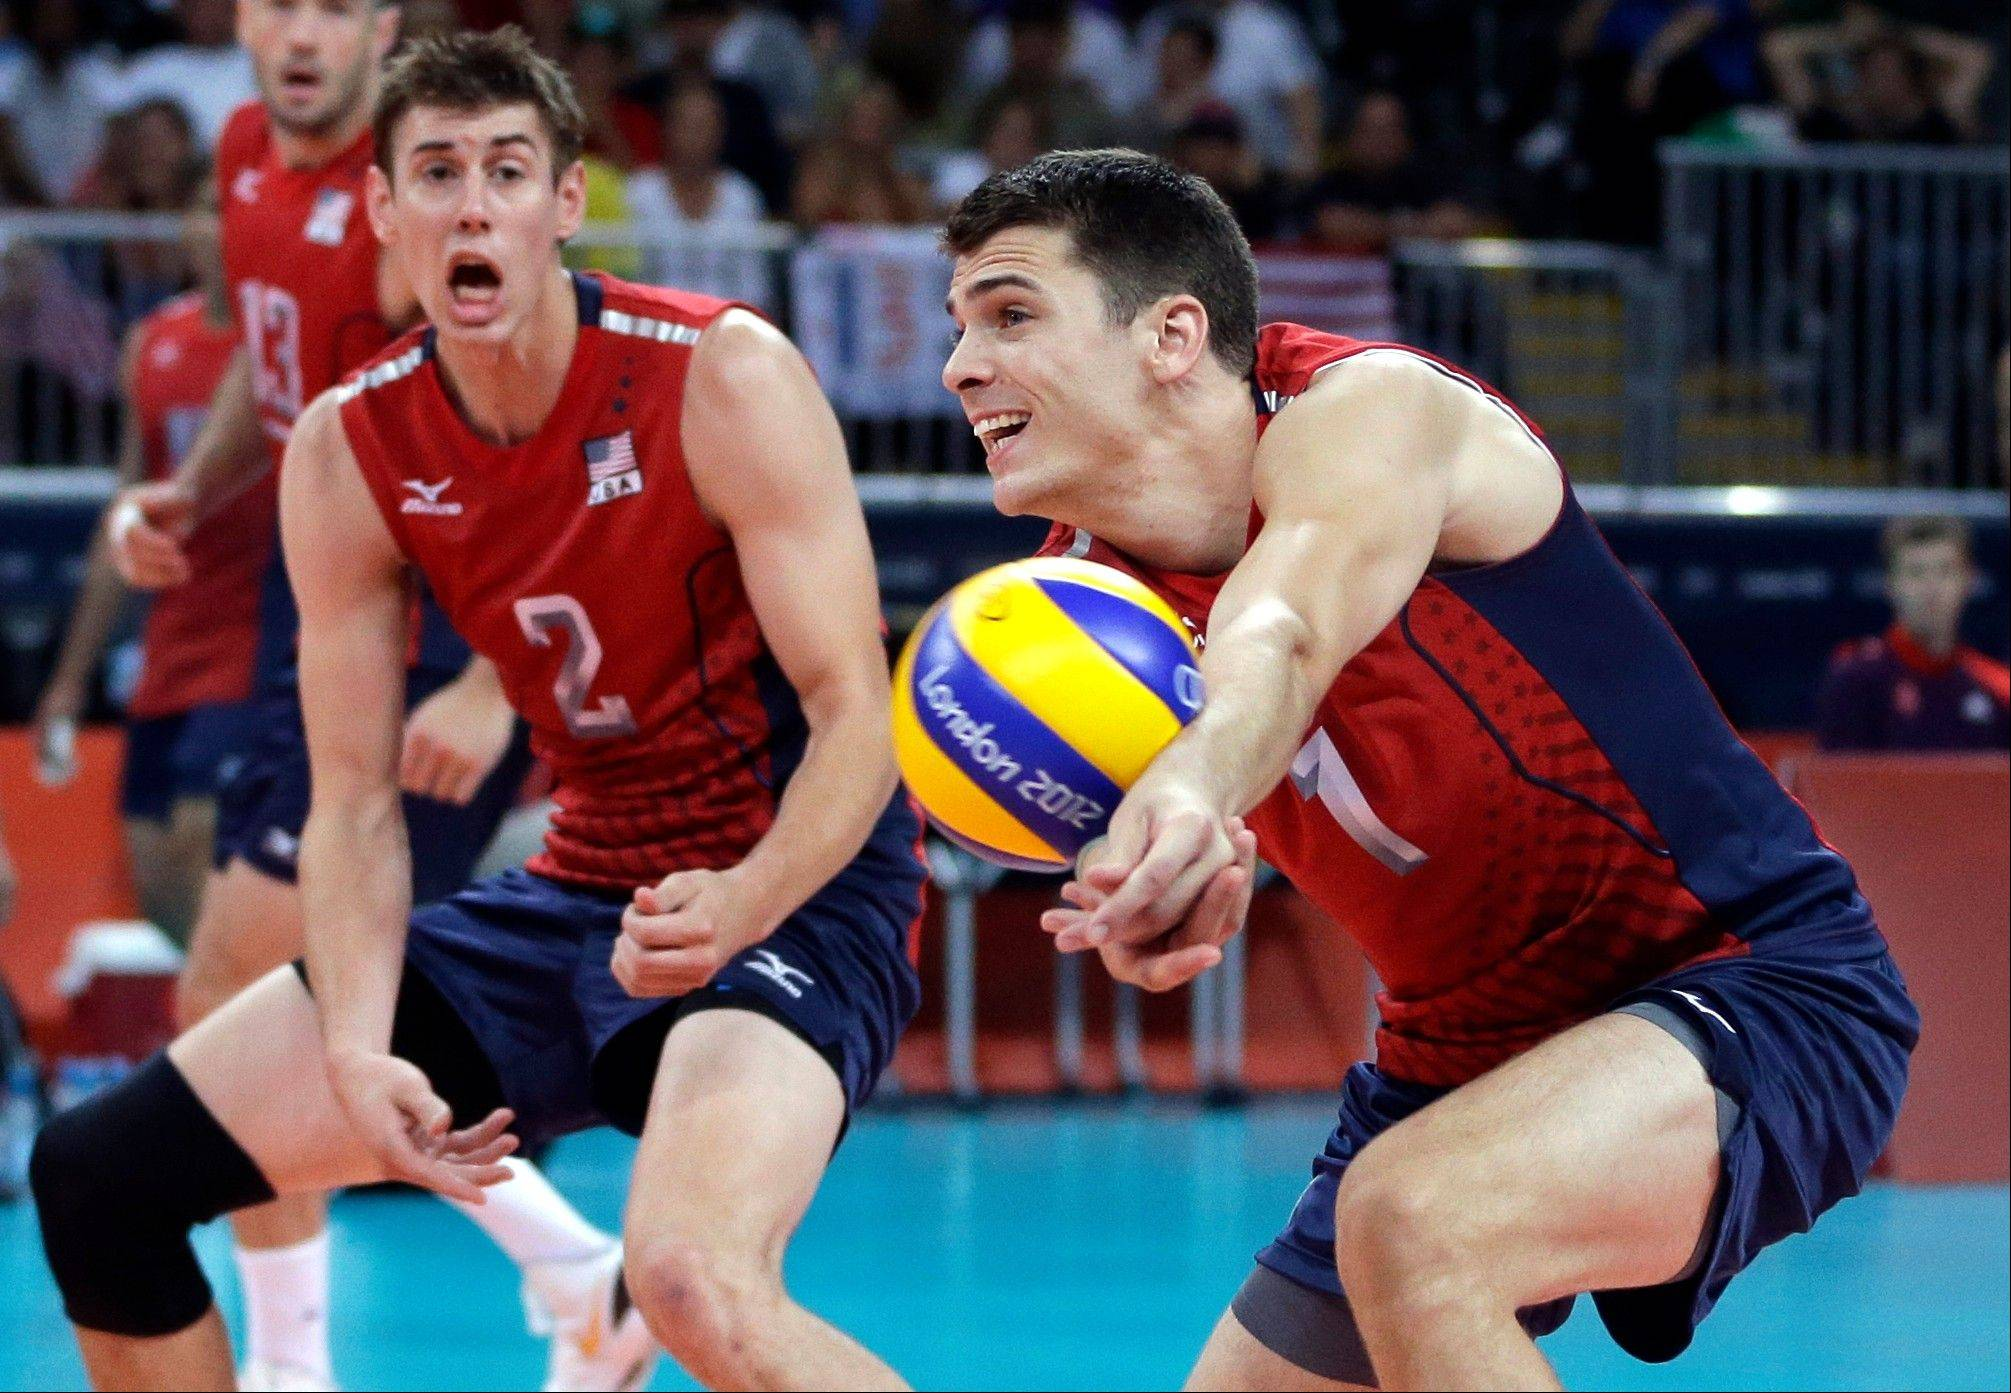 Associated PressTeam USA's Matthew Anderson passes the ball as teammate Sean Rooney, a Wheaton native, watches Saturday during a men's preliminary volleyball match against Russia at the London Olympics.